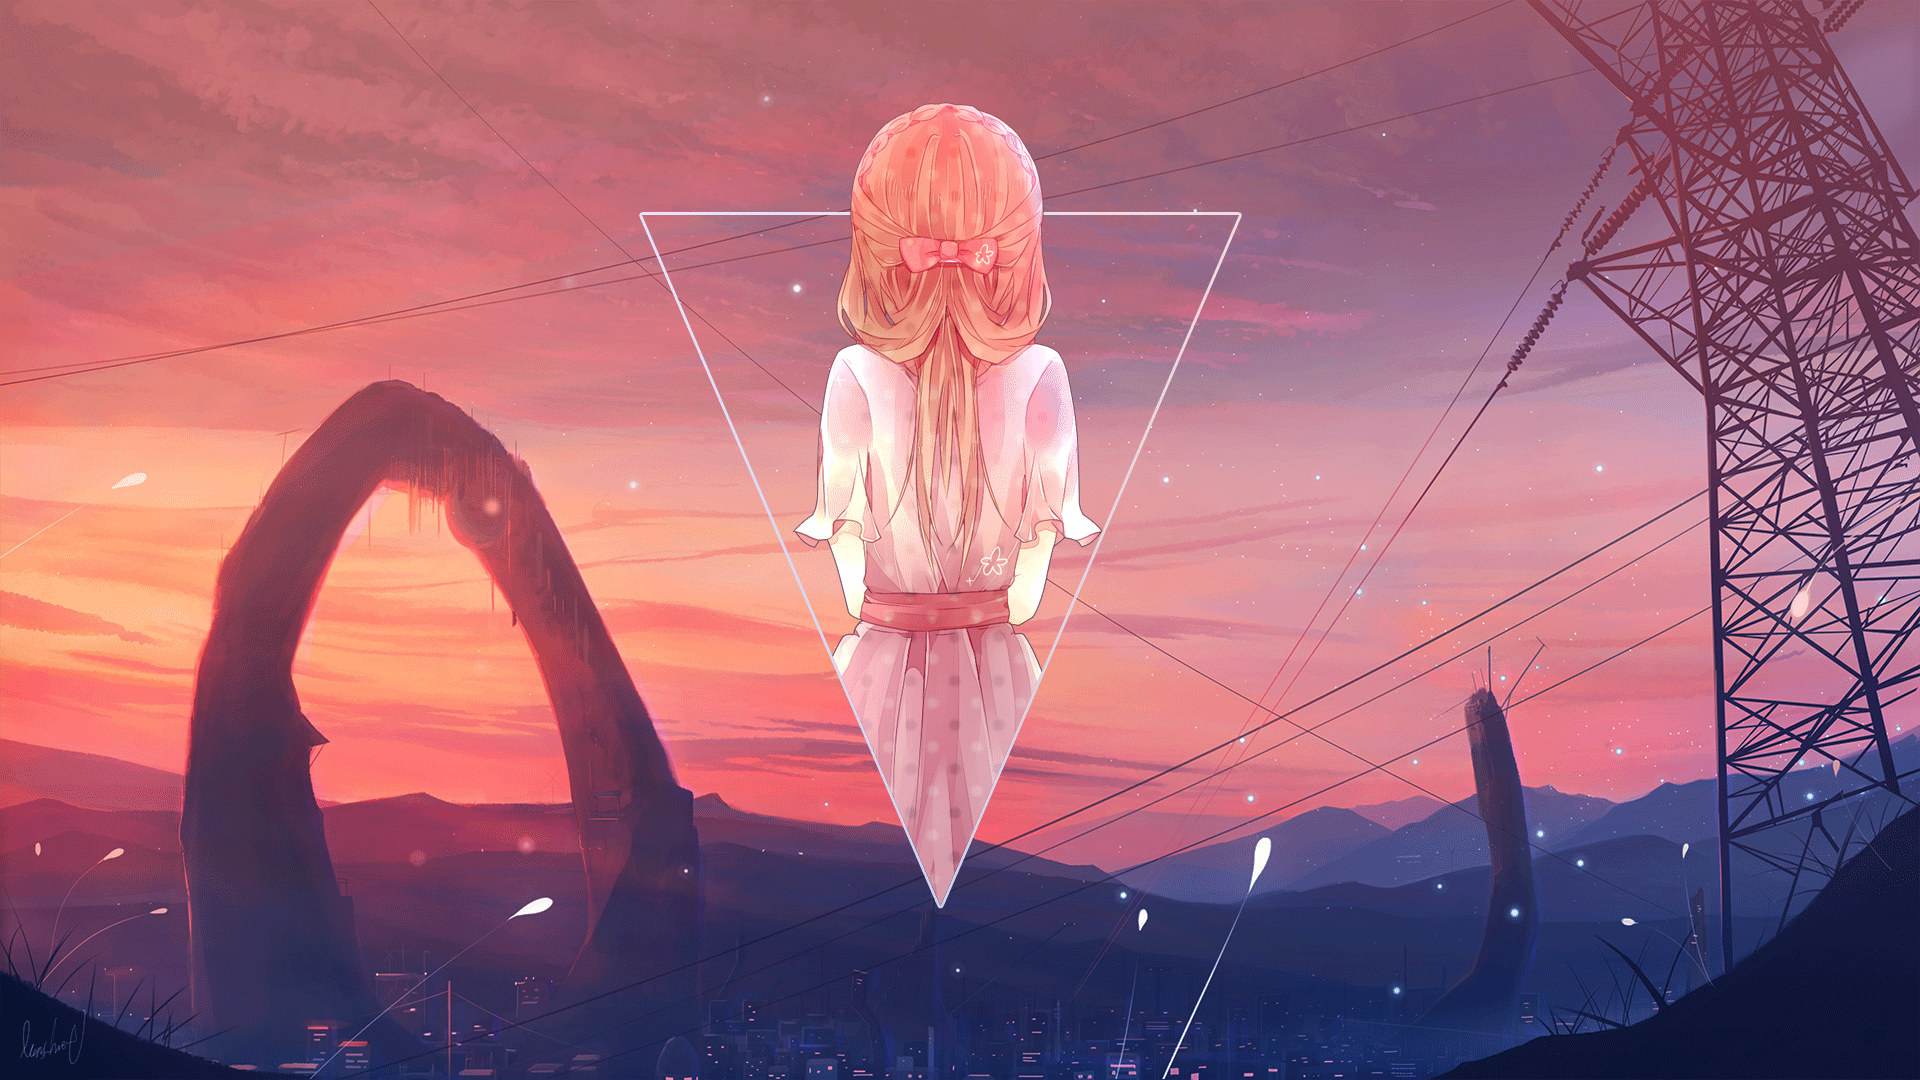 Anime 1920x1080 anime anime girls digital art Photoshop picture-in-picture back landscape sky